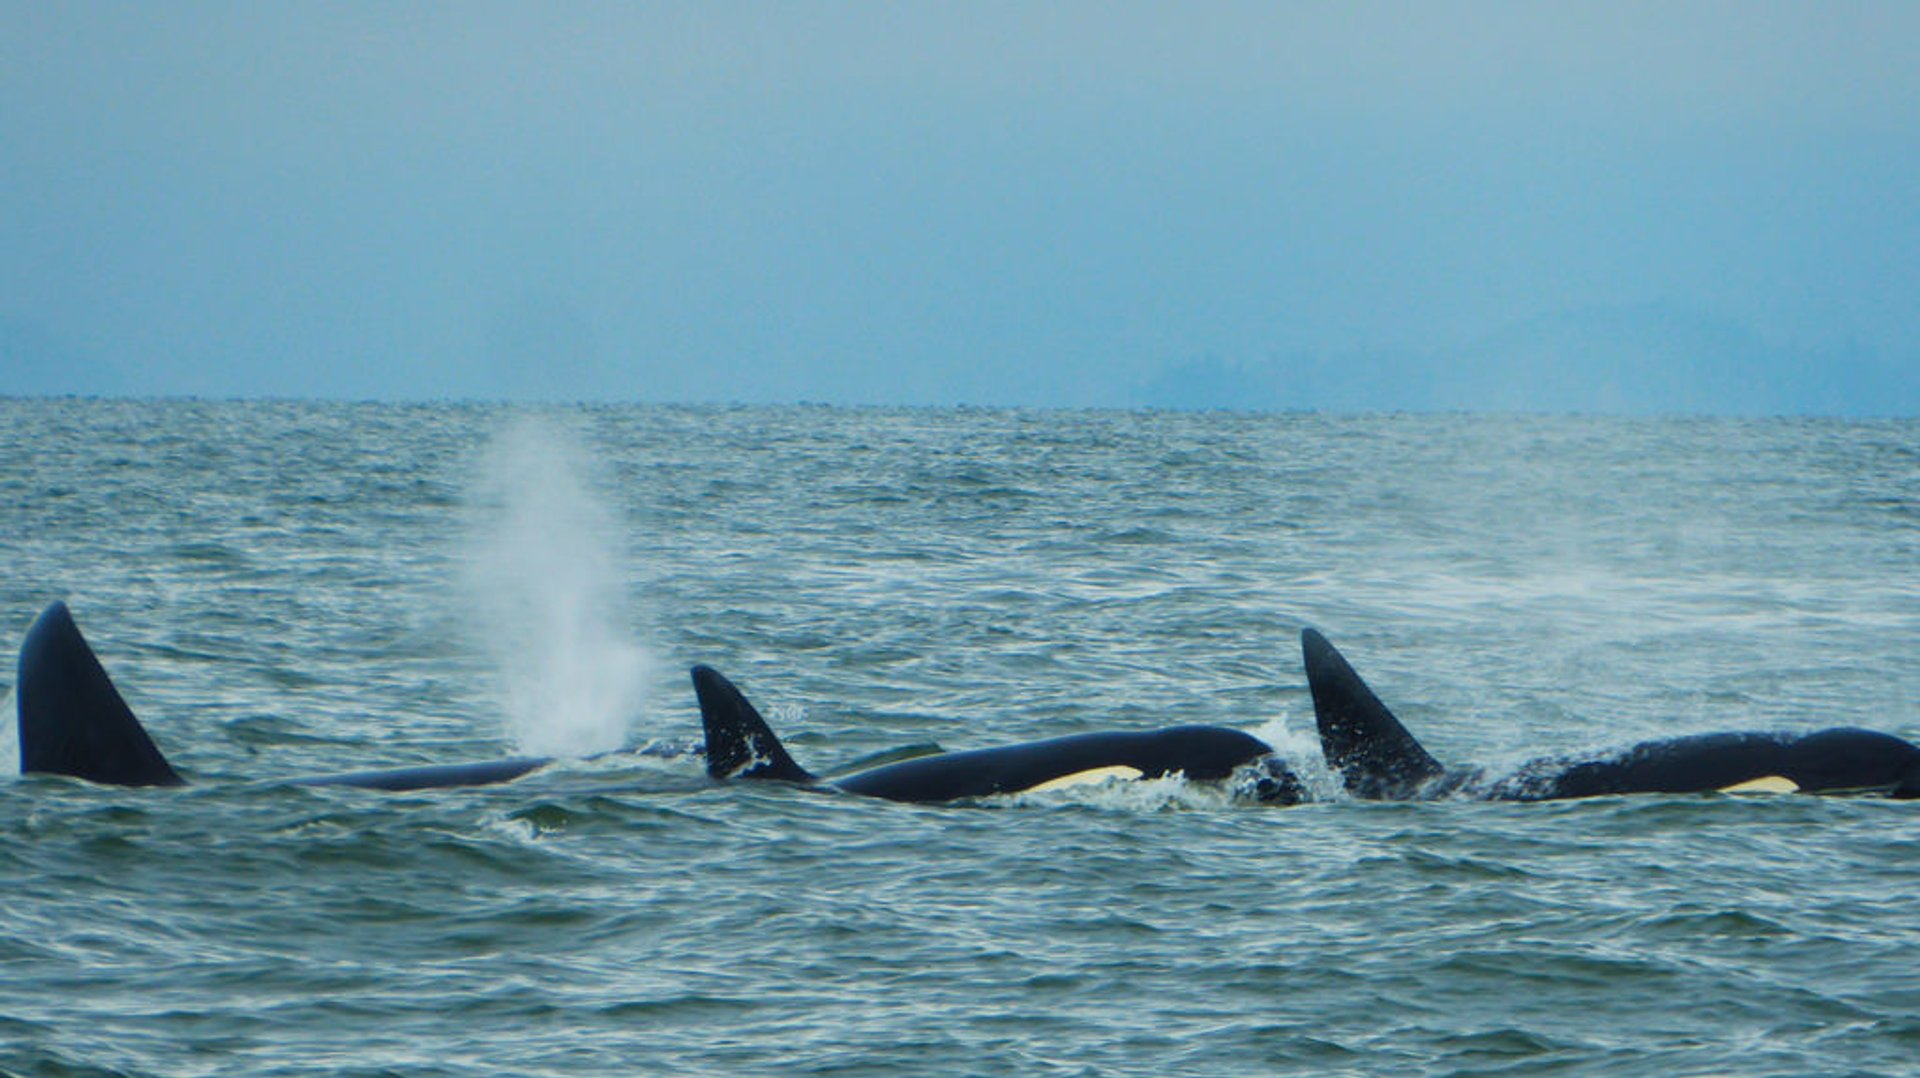 Orca whales 2020